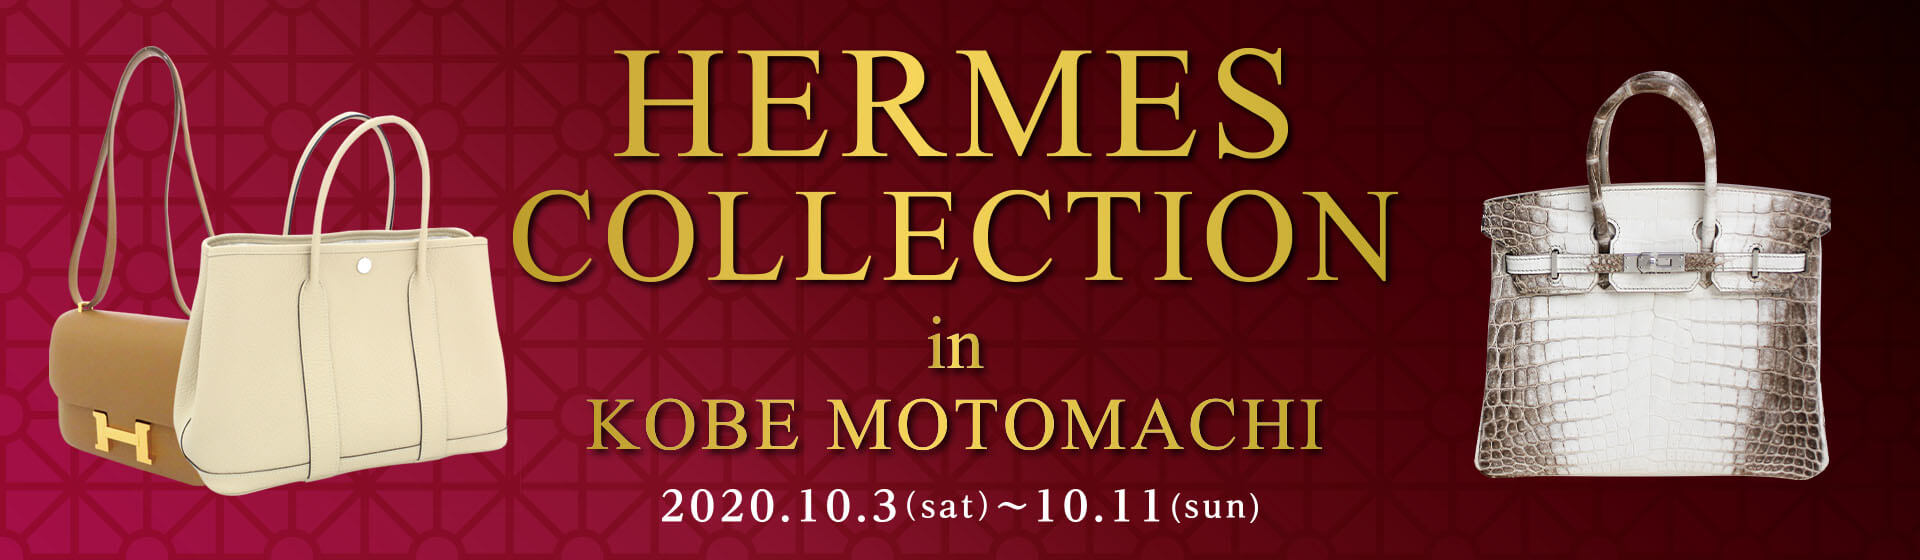 2010-Hermes collection in Kobe Motomachi-WEB1920px560pxtop